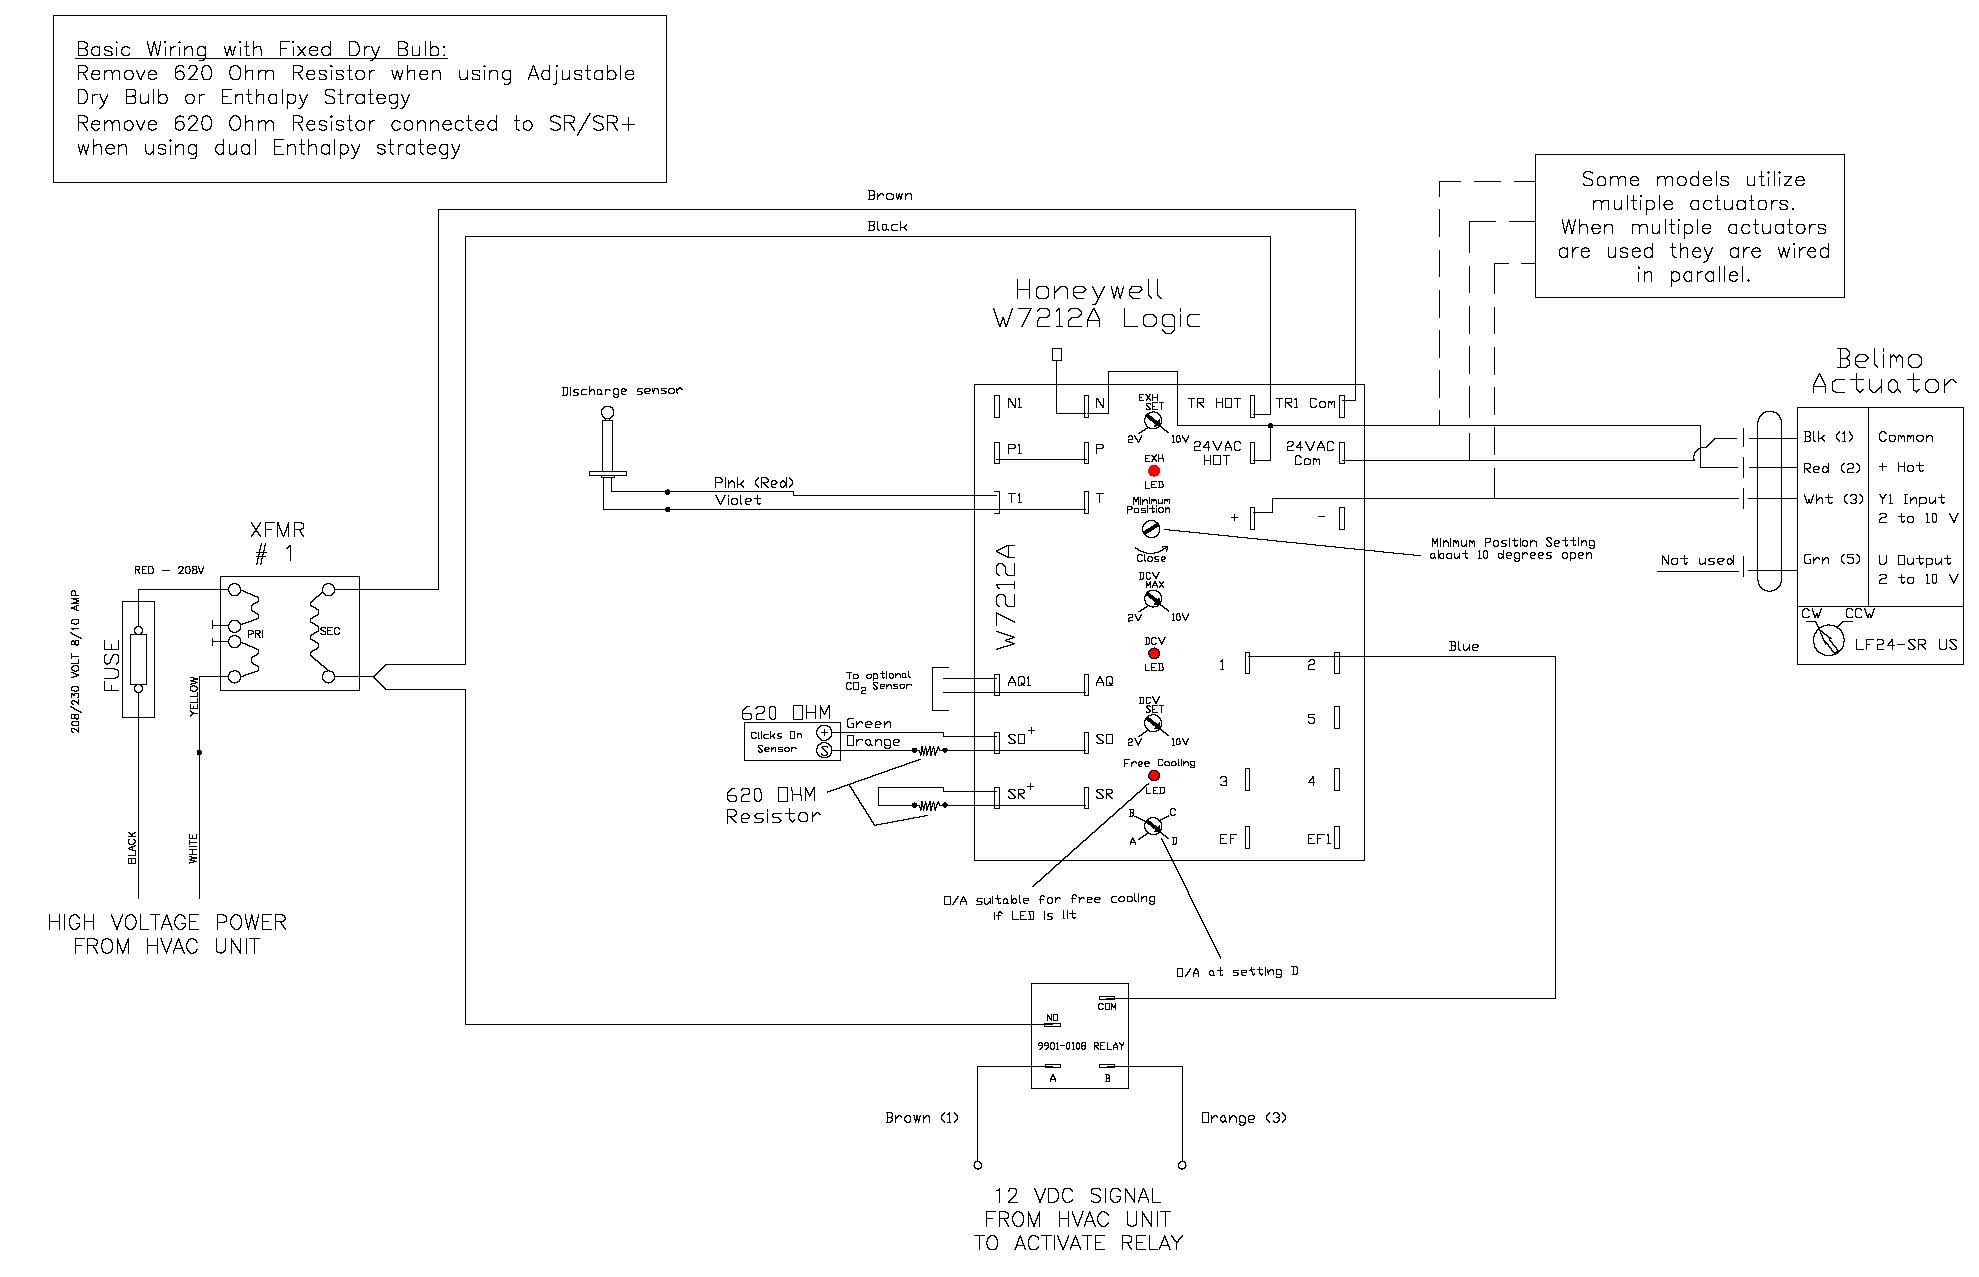 pages from micro metl pefy top back economizer wiring ddc panel wiring diagram valve wiring diagram \u2022 wiring diagrams micrometl economizer wiring diagram at gsmx.co